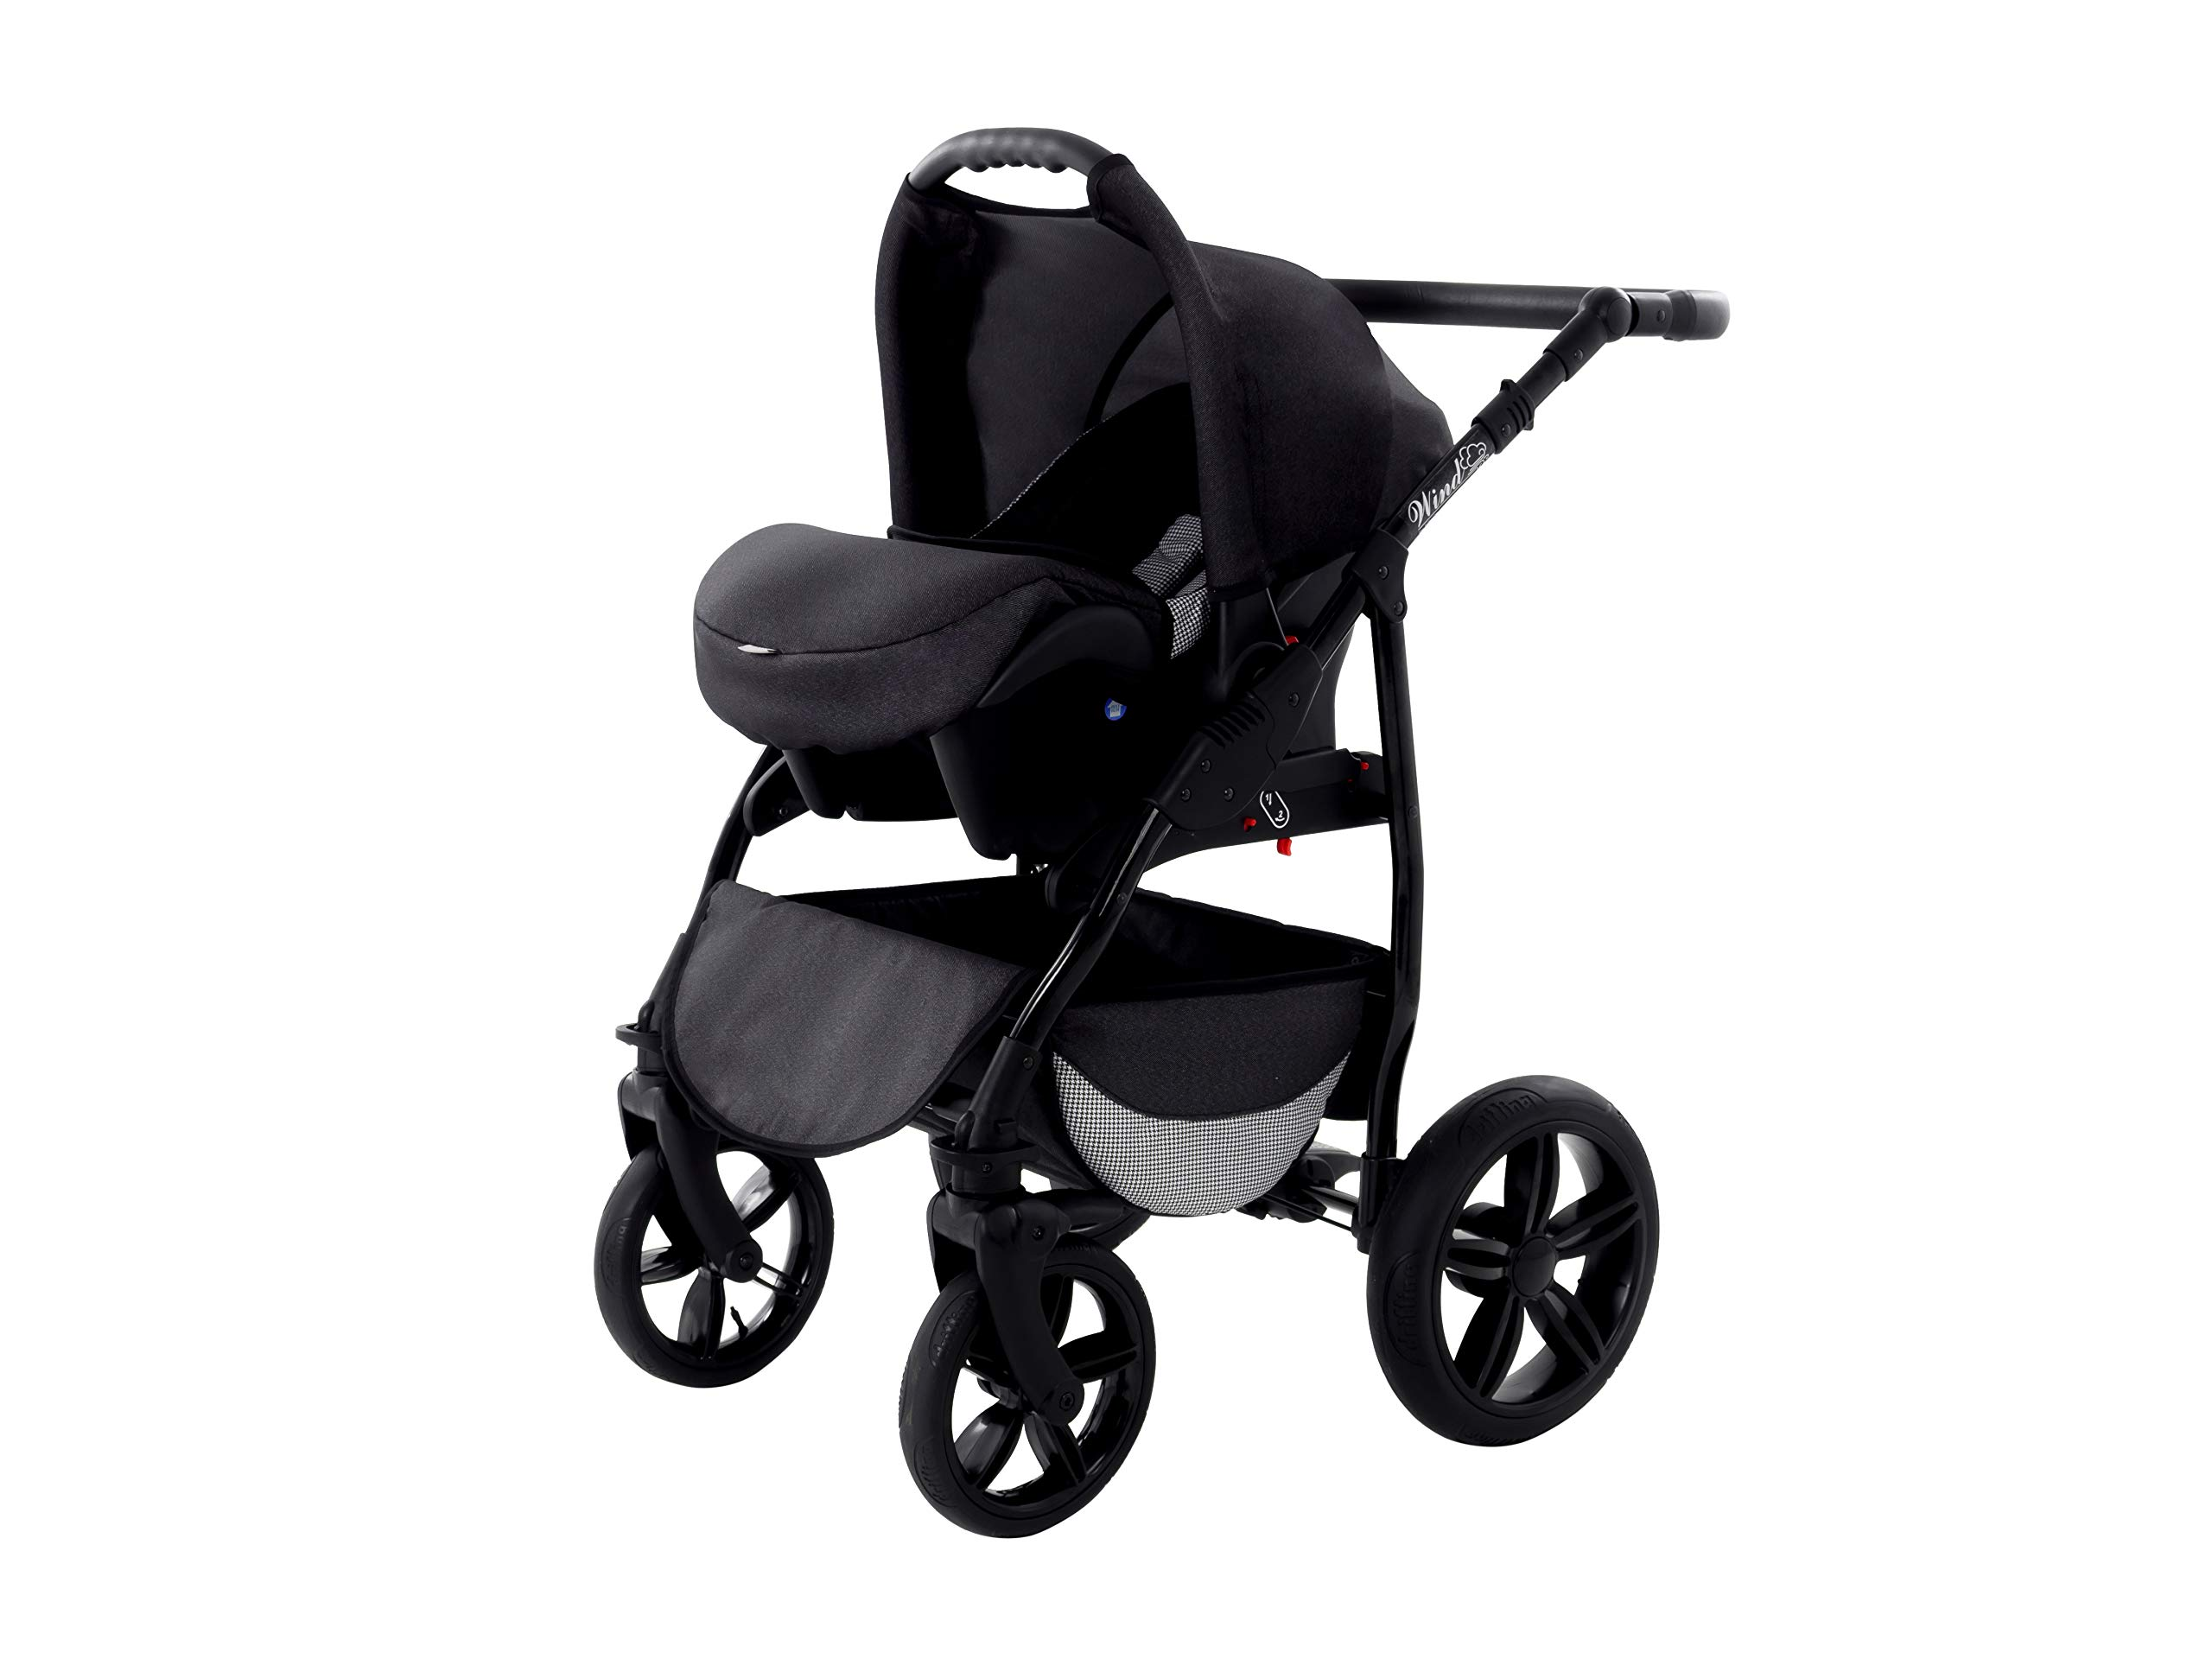 Baby Pram Zeo Wind 3in1 Set - All You Need! carrycot Gondola Buggy Sport Part Pushchair car seat (54) Zeo 3 in 1 combination stroller complete set, with reversible seat units to the buggy, child car seat or baby carriage The baby carriage is suitable for babies from 0 months to 3 years (0-15 kg) Has 360 ° swiveling wheels, four-fold suspension, four-stage backrest, five-position adjustable footrest and a five-point safety belt 9